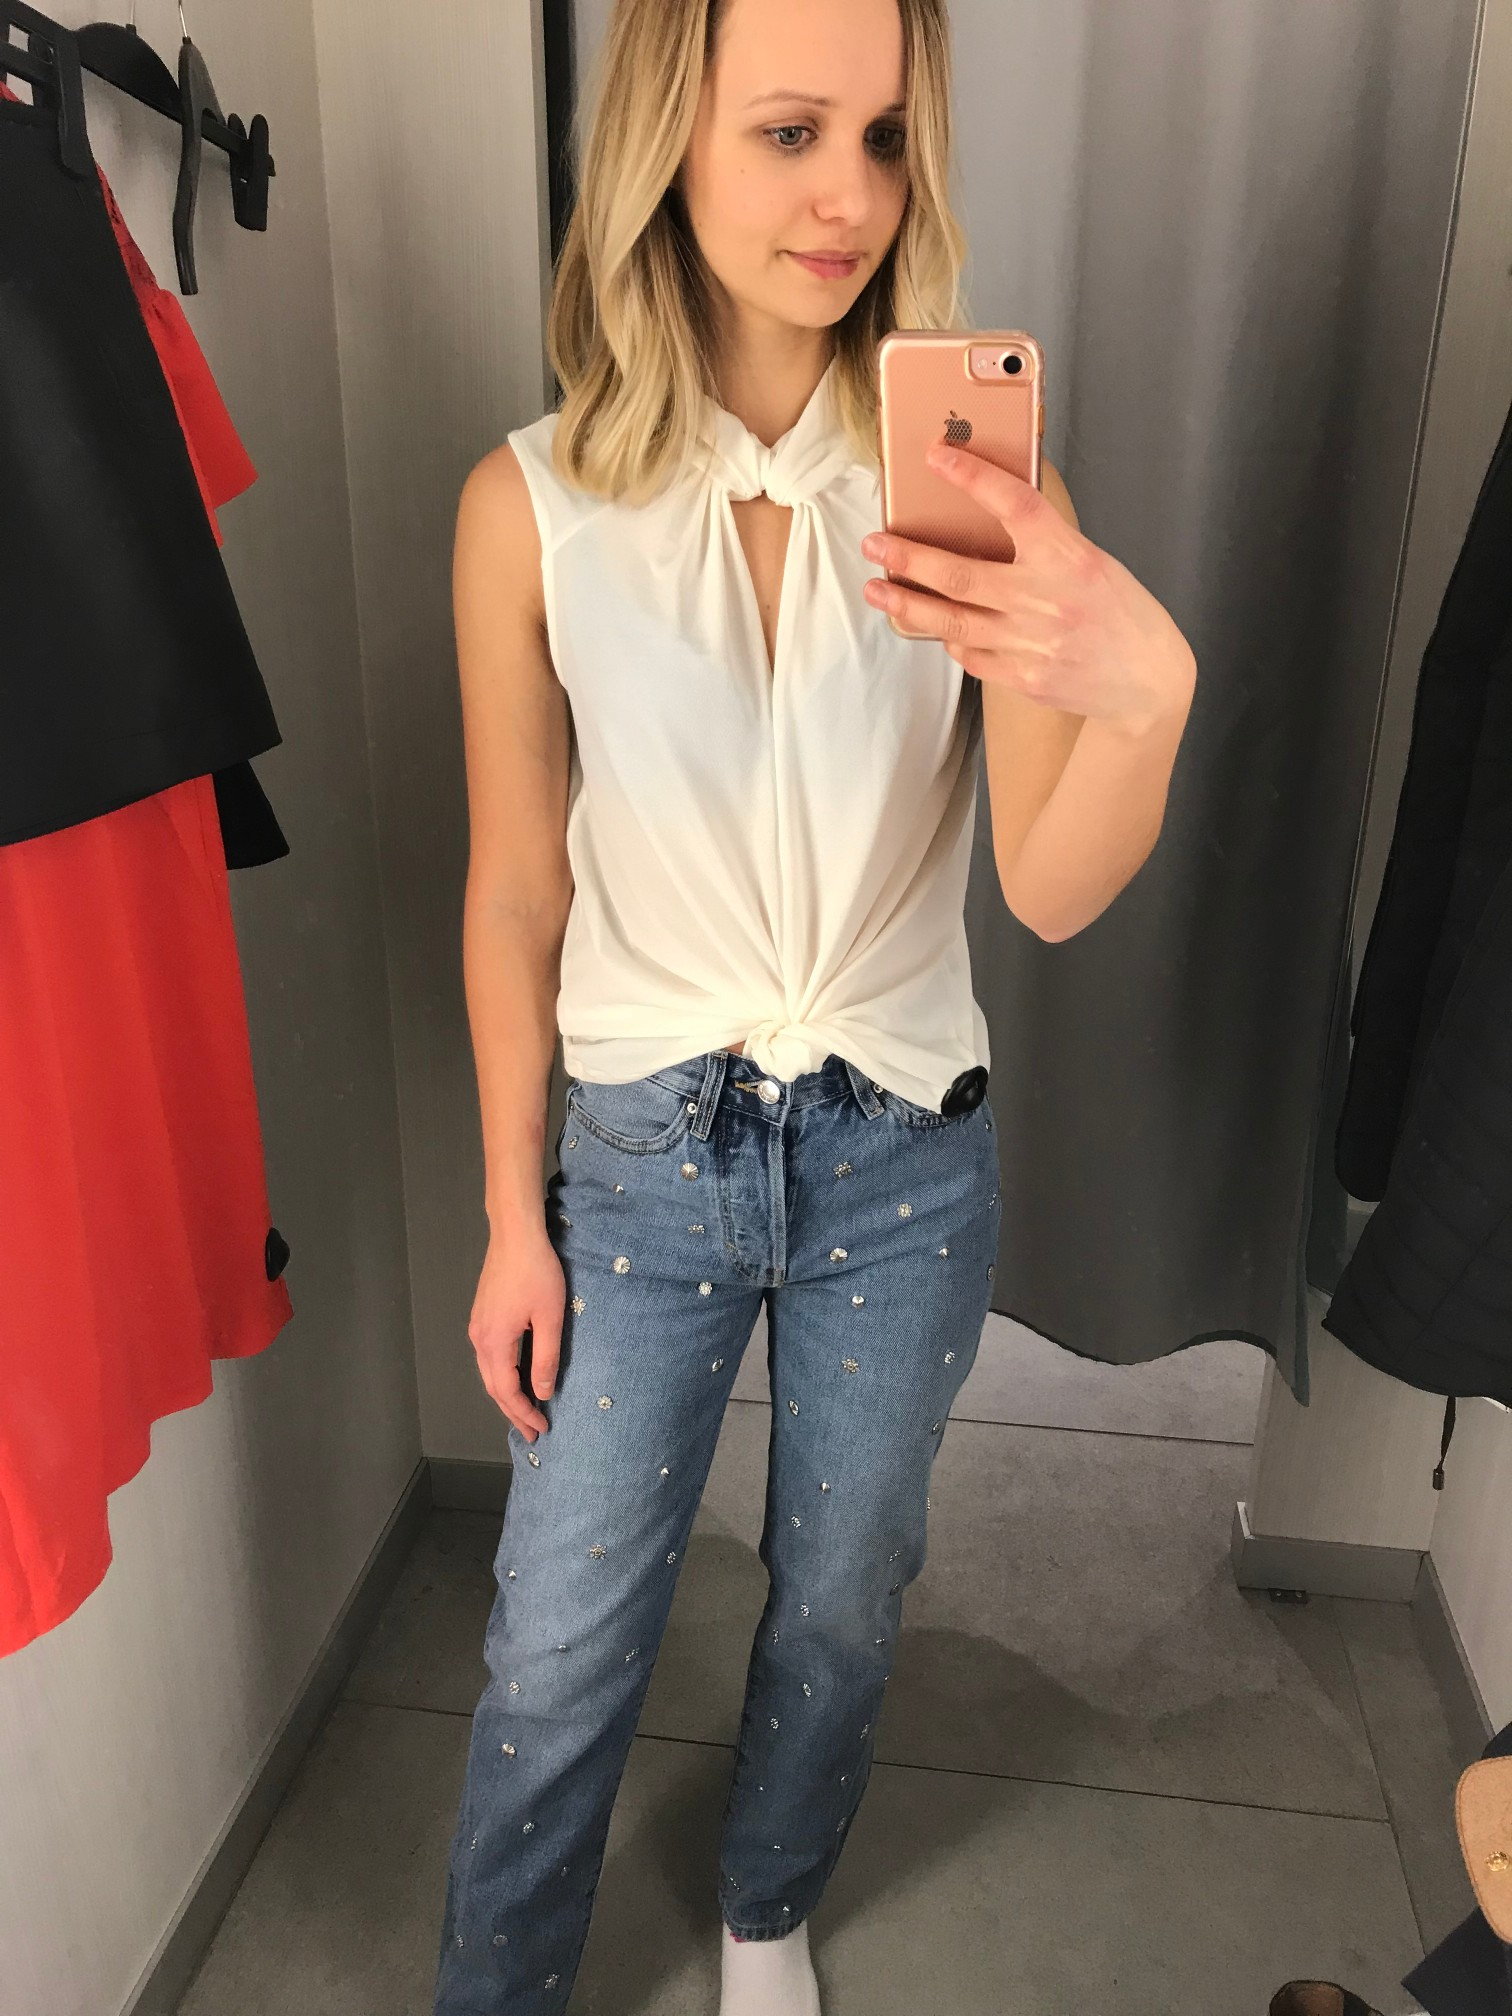 H&M Vintage High Jeans   Fitting Room Adventures by Little Things Olga